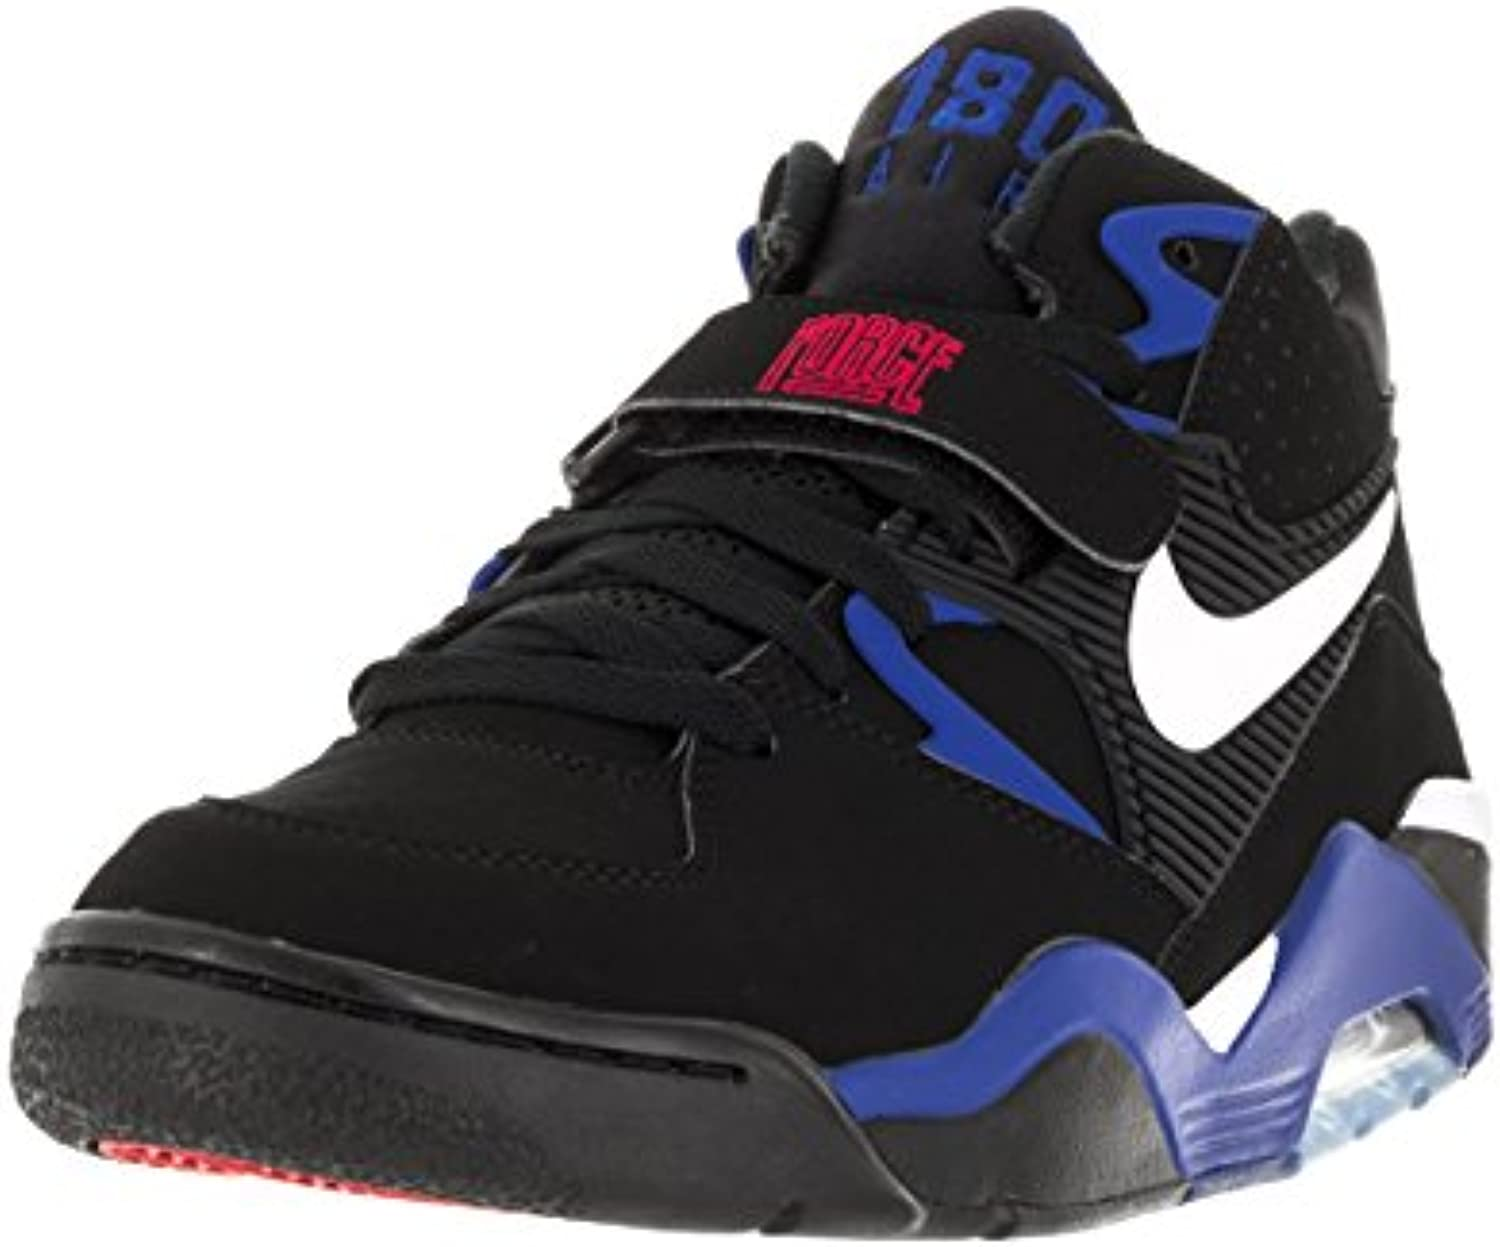 Air Force 180 - Size 9.5 - US Size